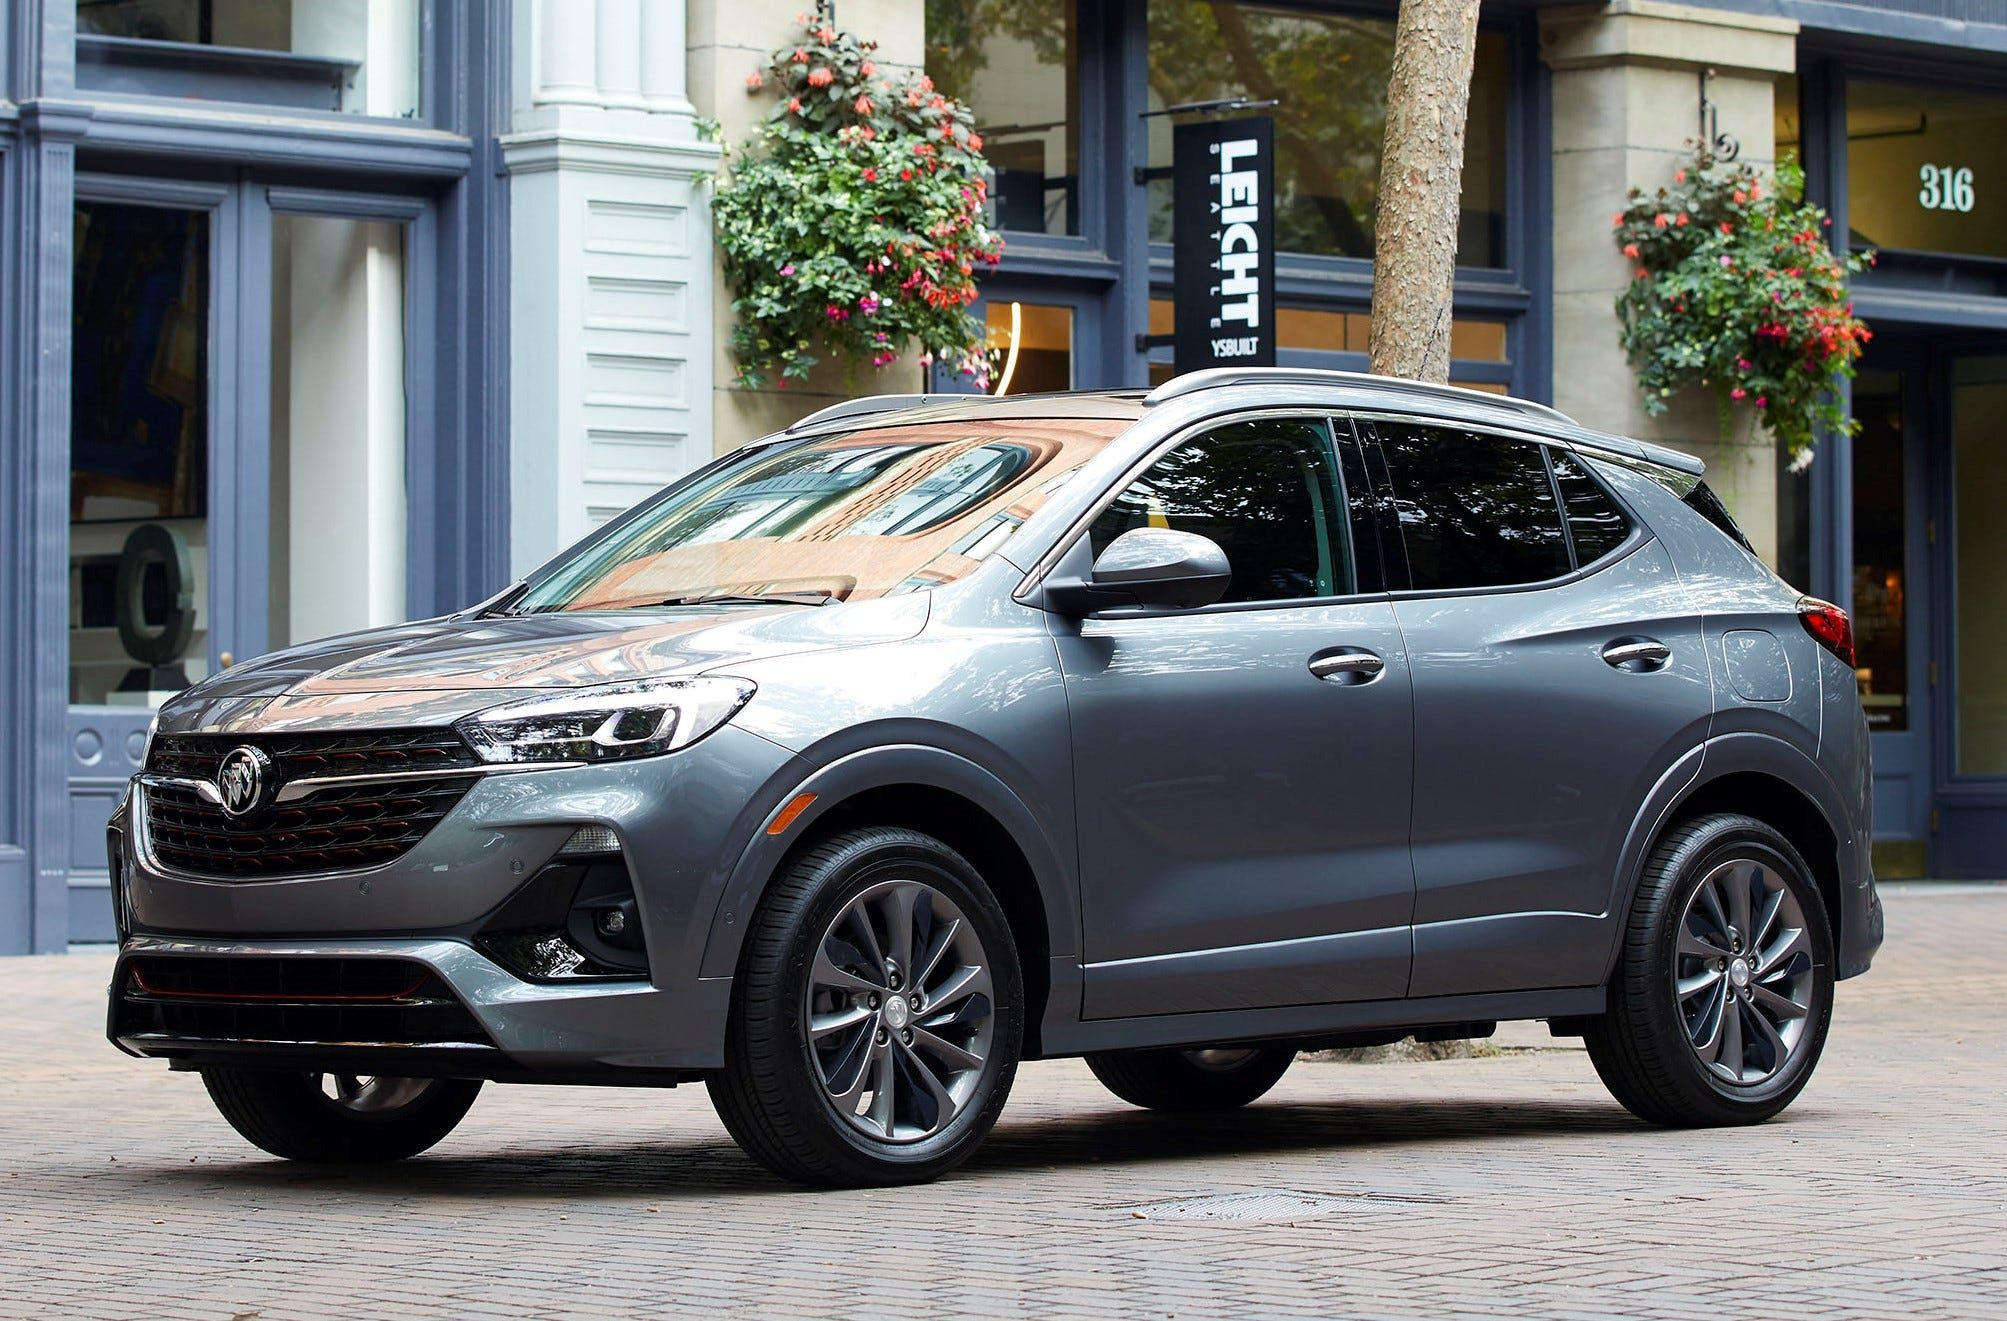 Buick Reveals Power Features Of 2020 Encore Gx Compact Suv Buick Encore Compact Suv Small Suv Cars